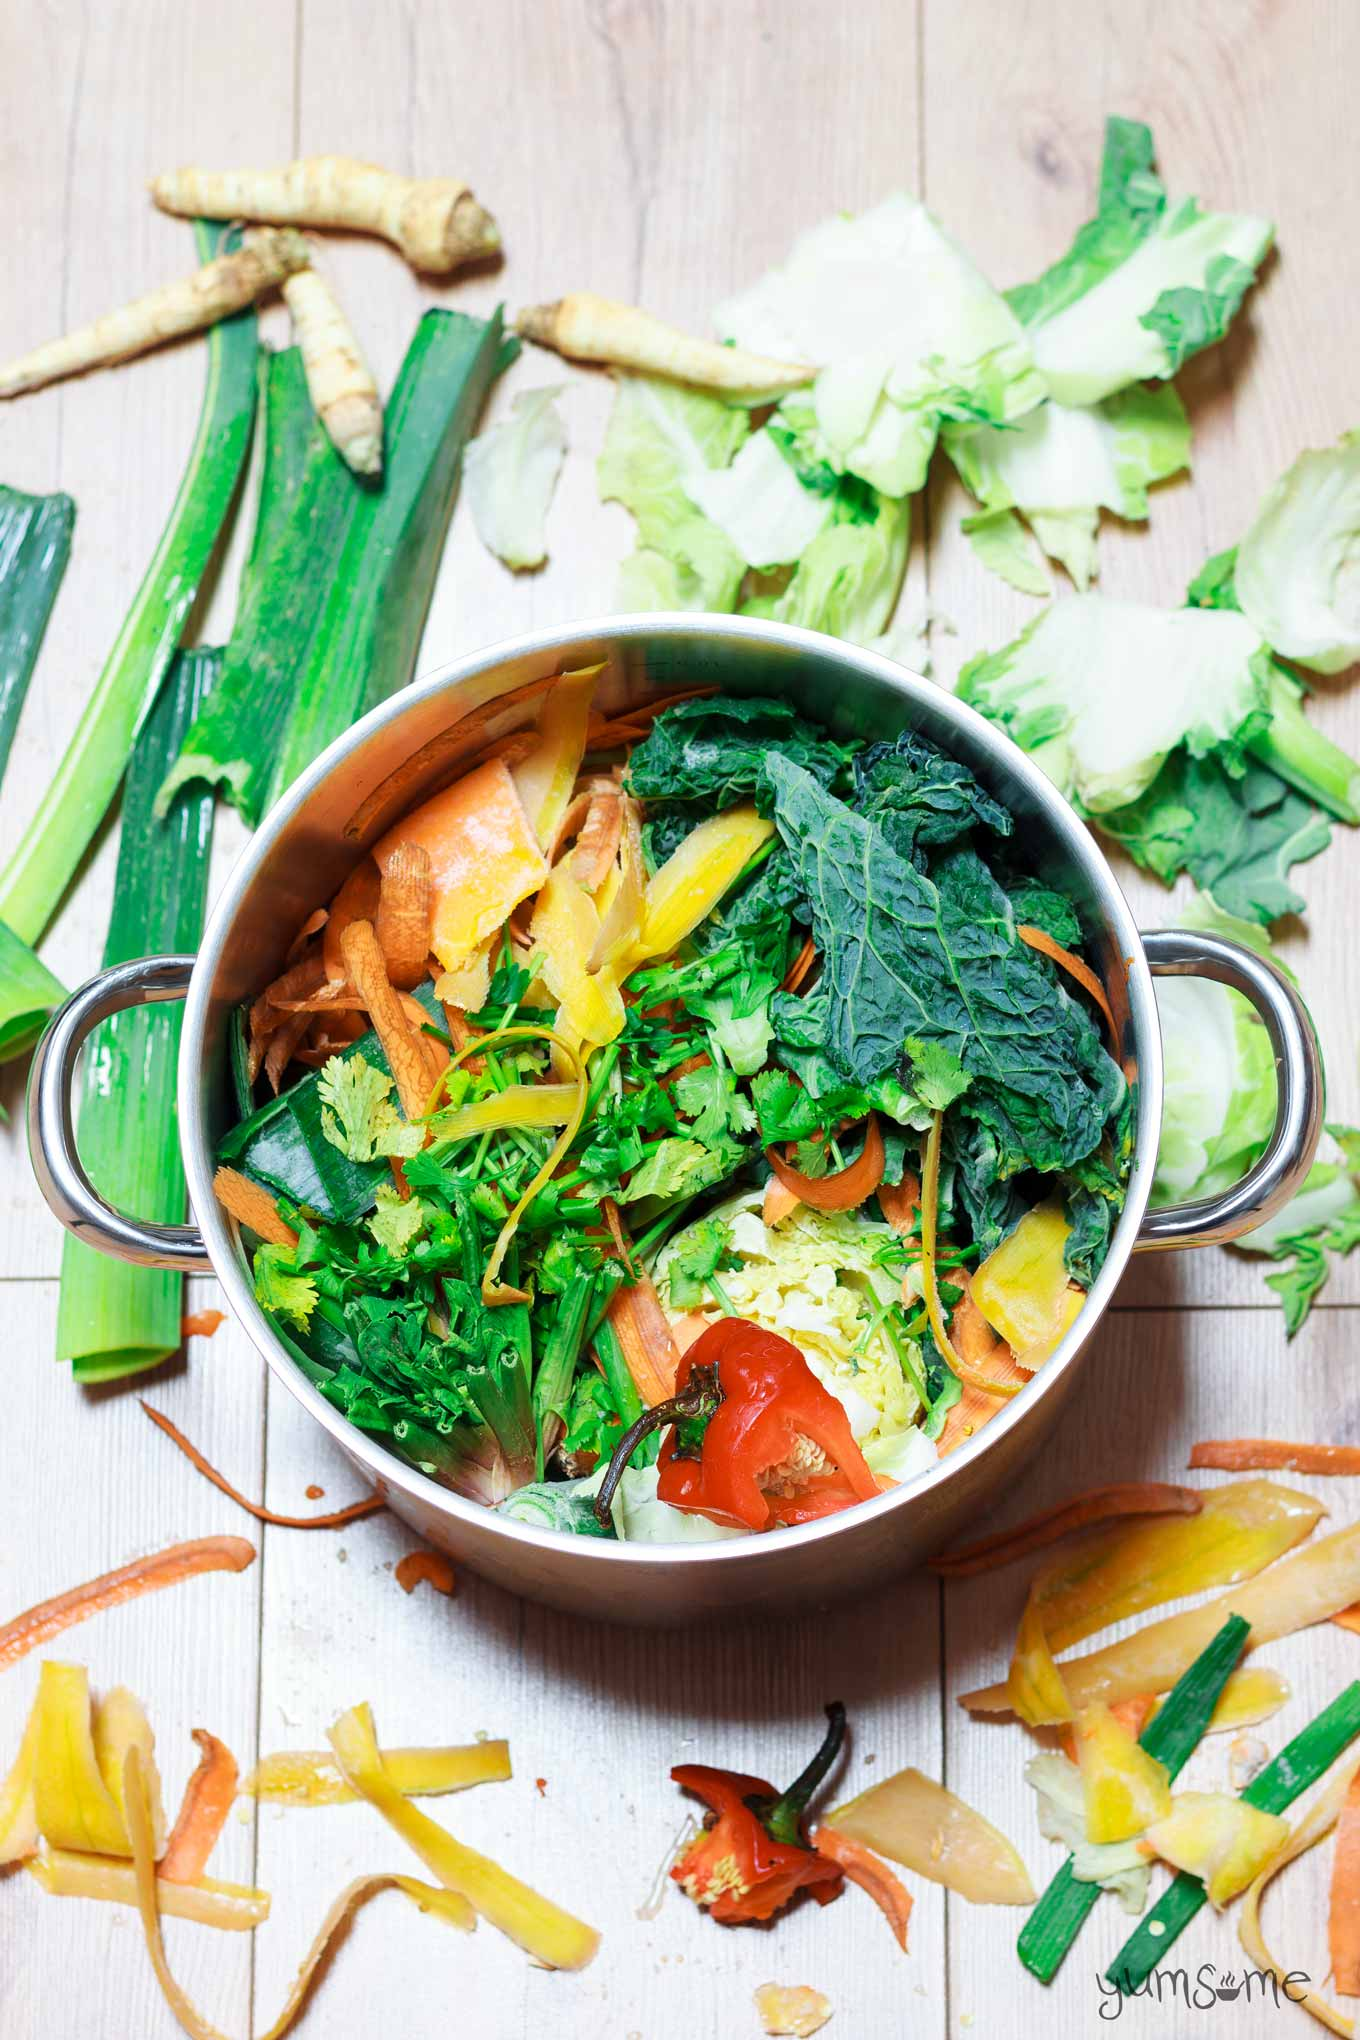 a pan of vegetable scraps | yumsome.com